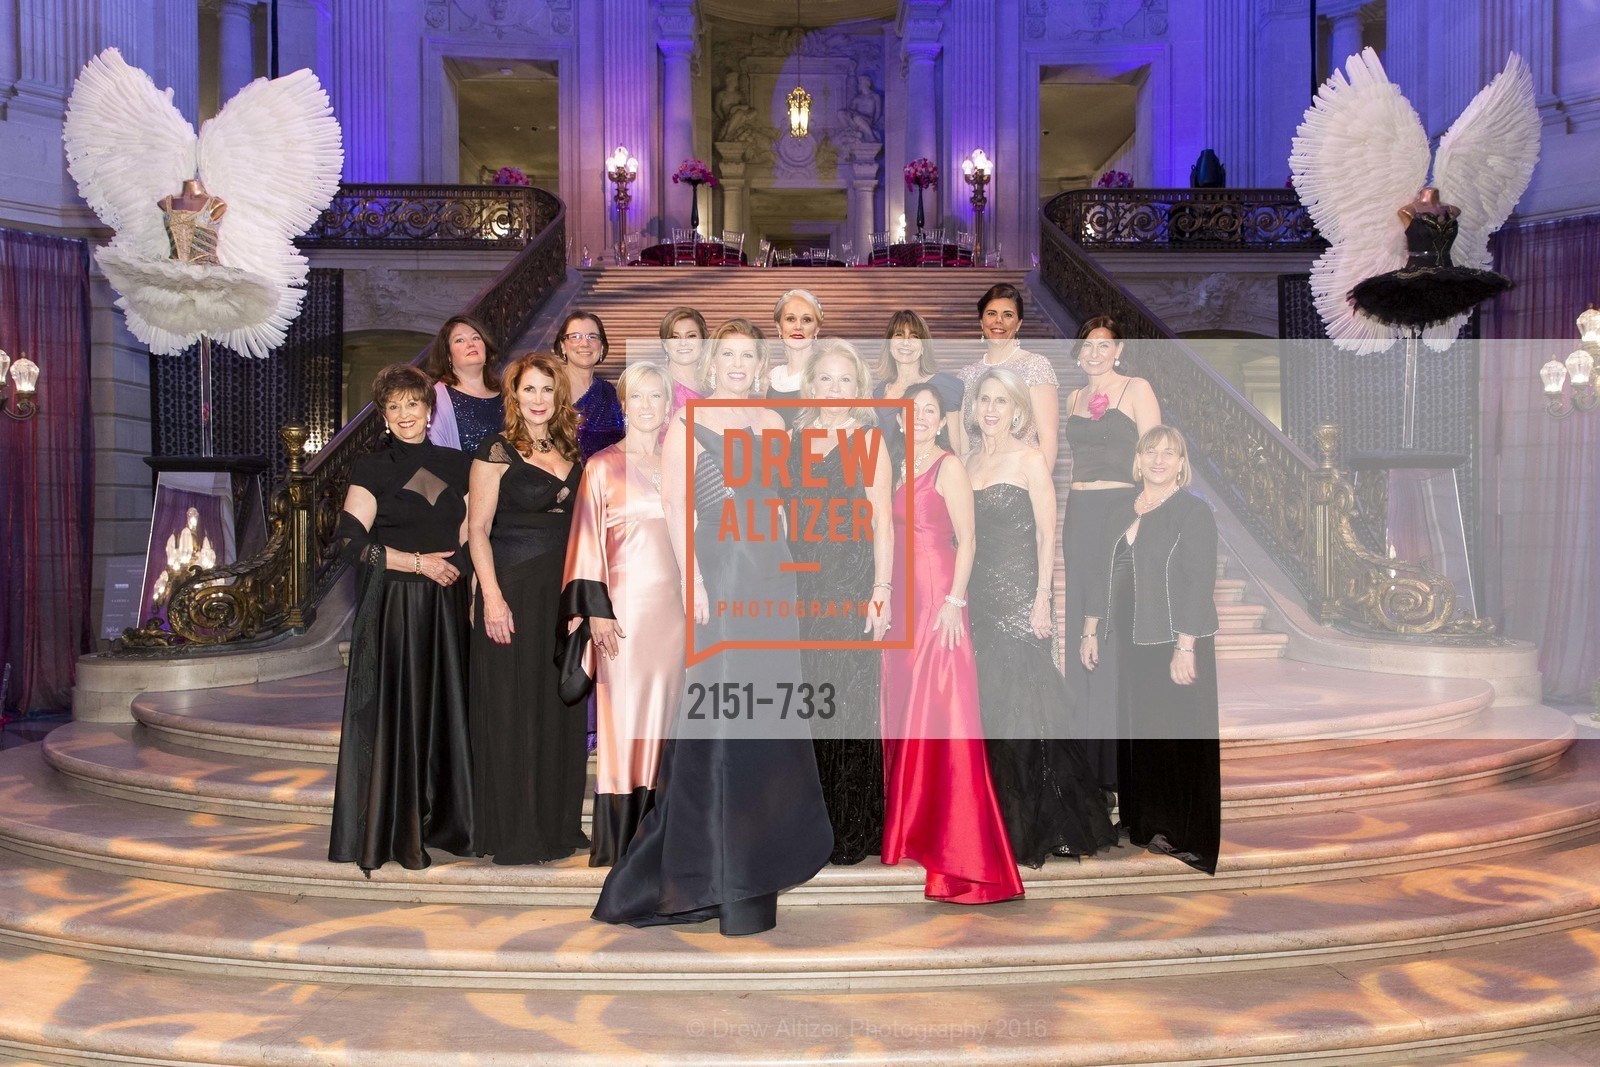 Suzanne Thornton, Catherine Bergstrom, Patricia Ferrin Loucks, Carolyn Koenig, Rhonda Mahendroo, Rene Rodman, Jennifer Brandenburg, Claire Kostic, Donna Bachle, Trecia Knapp, San Francisco Ballet 2016 Opening Night Gala, San Francisco City Hall. 1 Dr Carlton B Goodlett Pl, January 21st, 2016,Drew Altizer, Drew Altizer Photography, full-service agency, private events, San Francisco photographer, photographer california